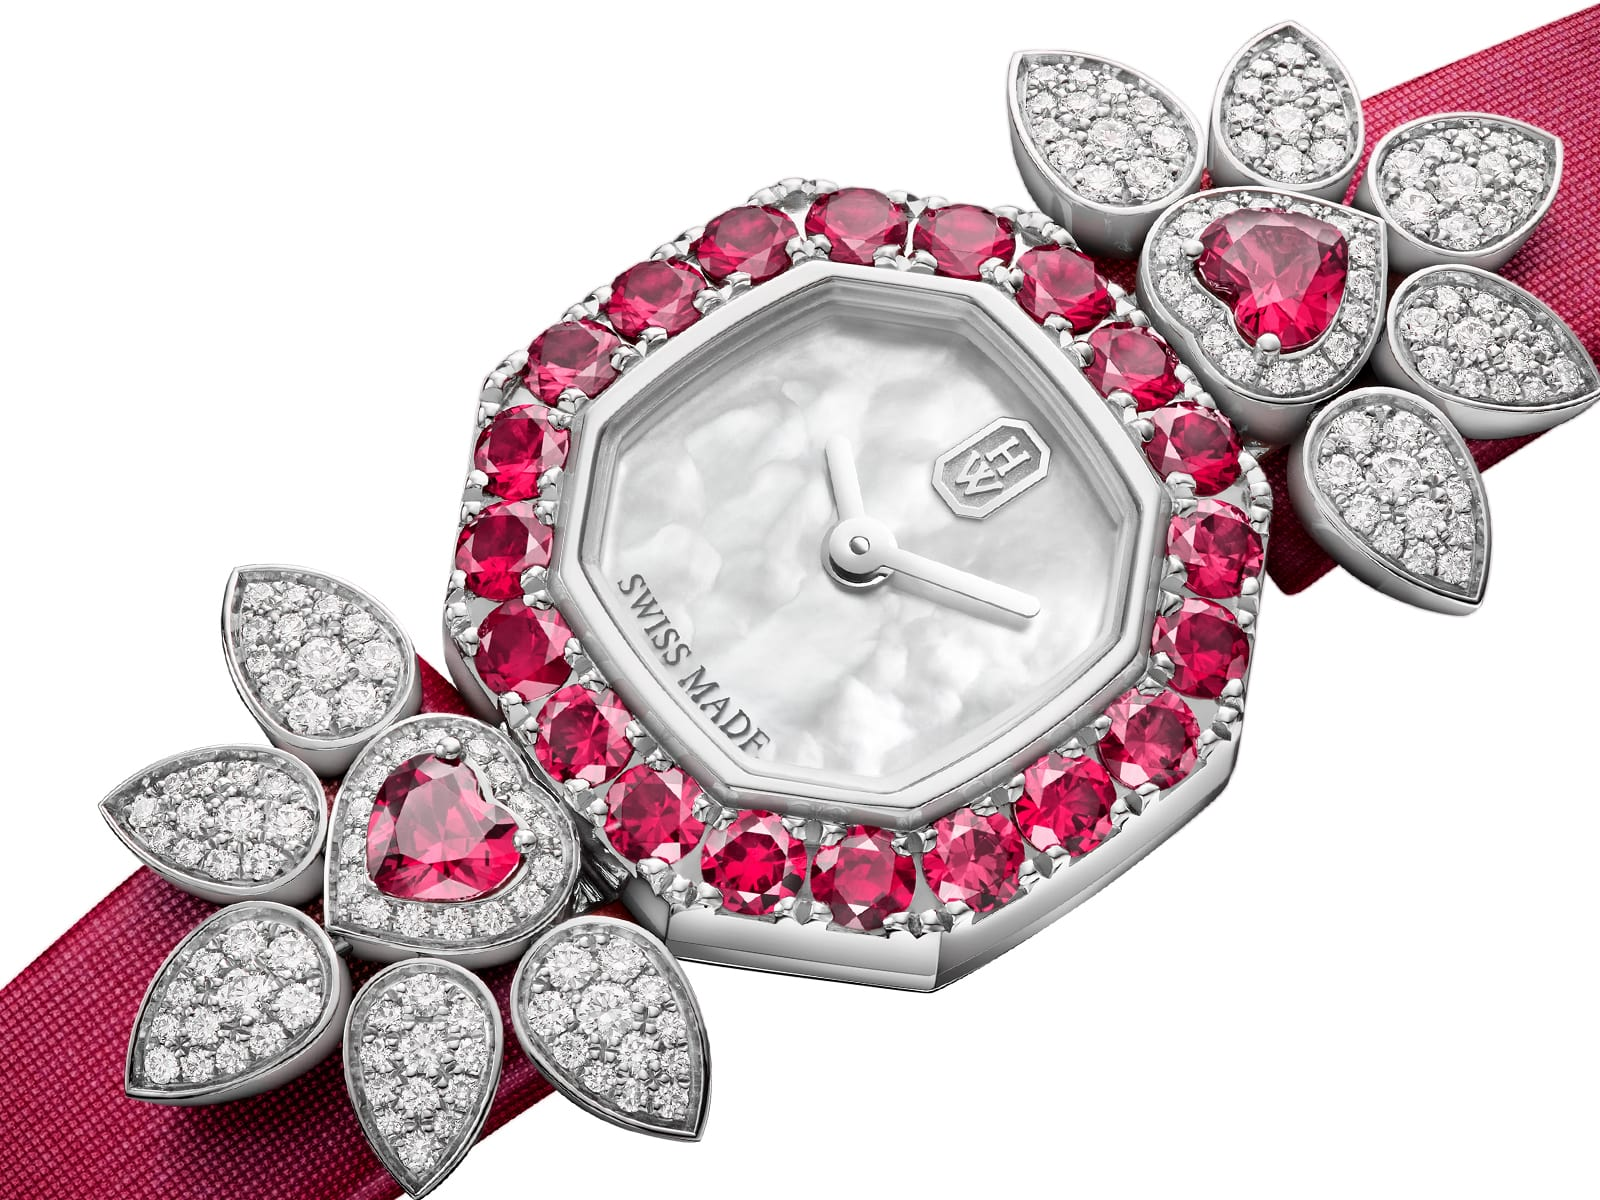 hjtqhm18pp011-harry-winston-precious-valentine-s-day-by-harry-winston-3.JPG